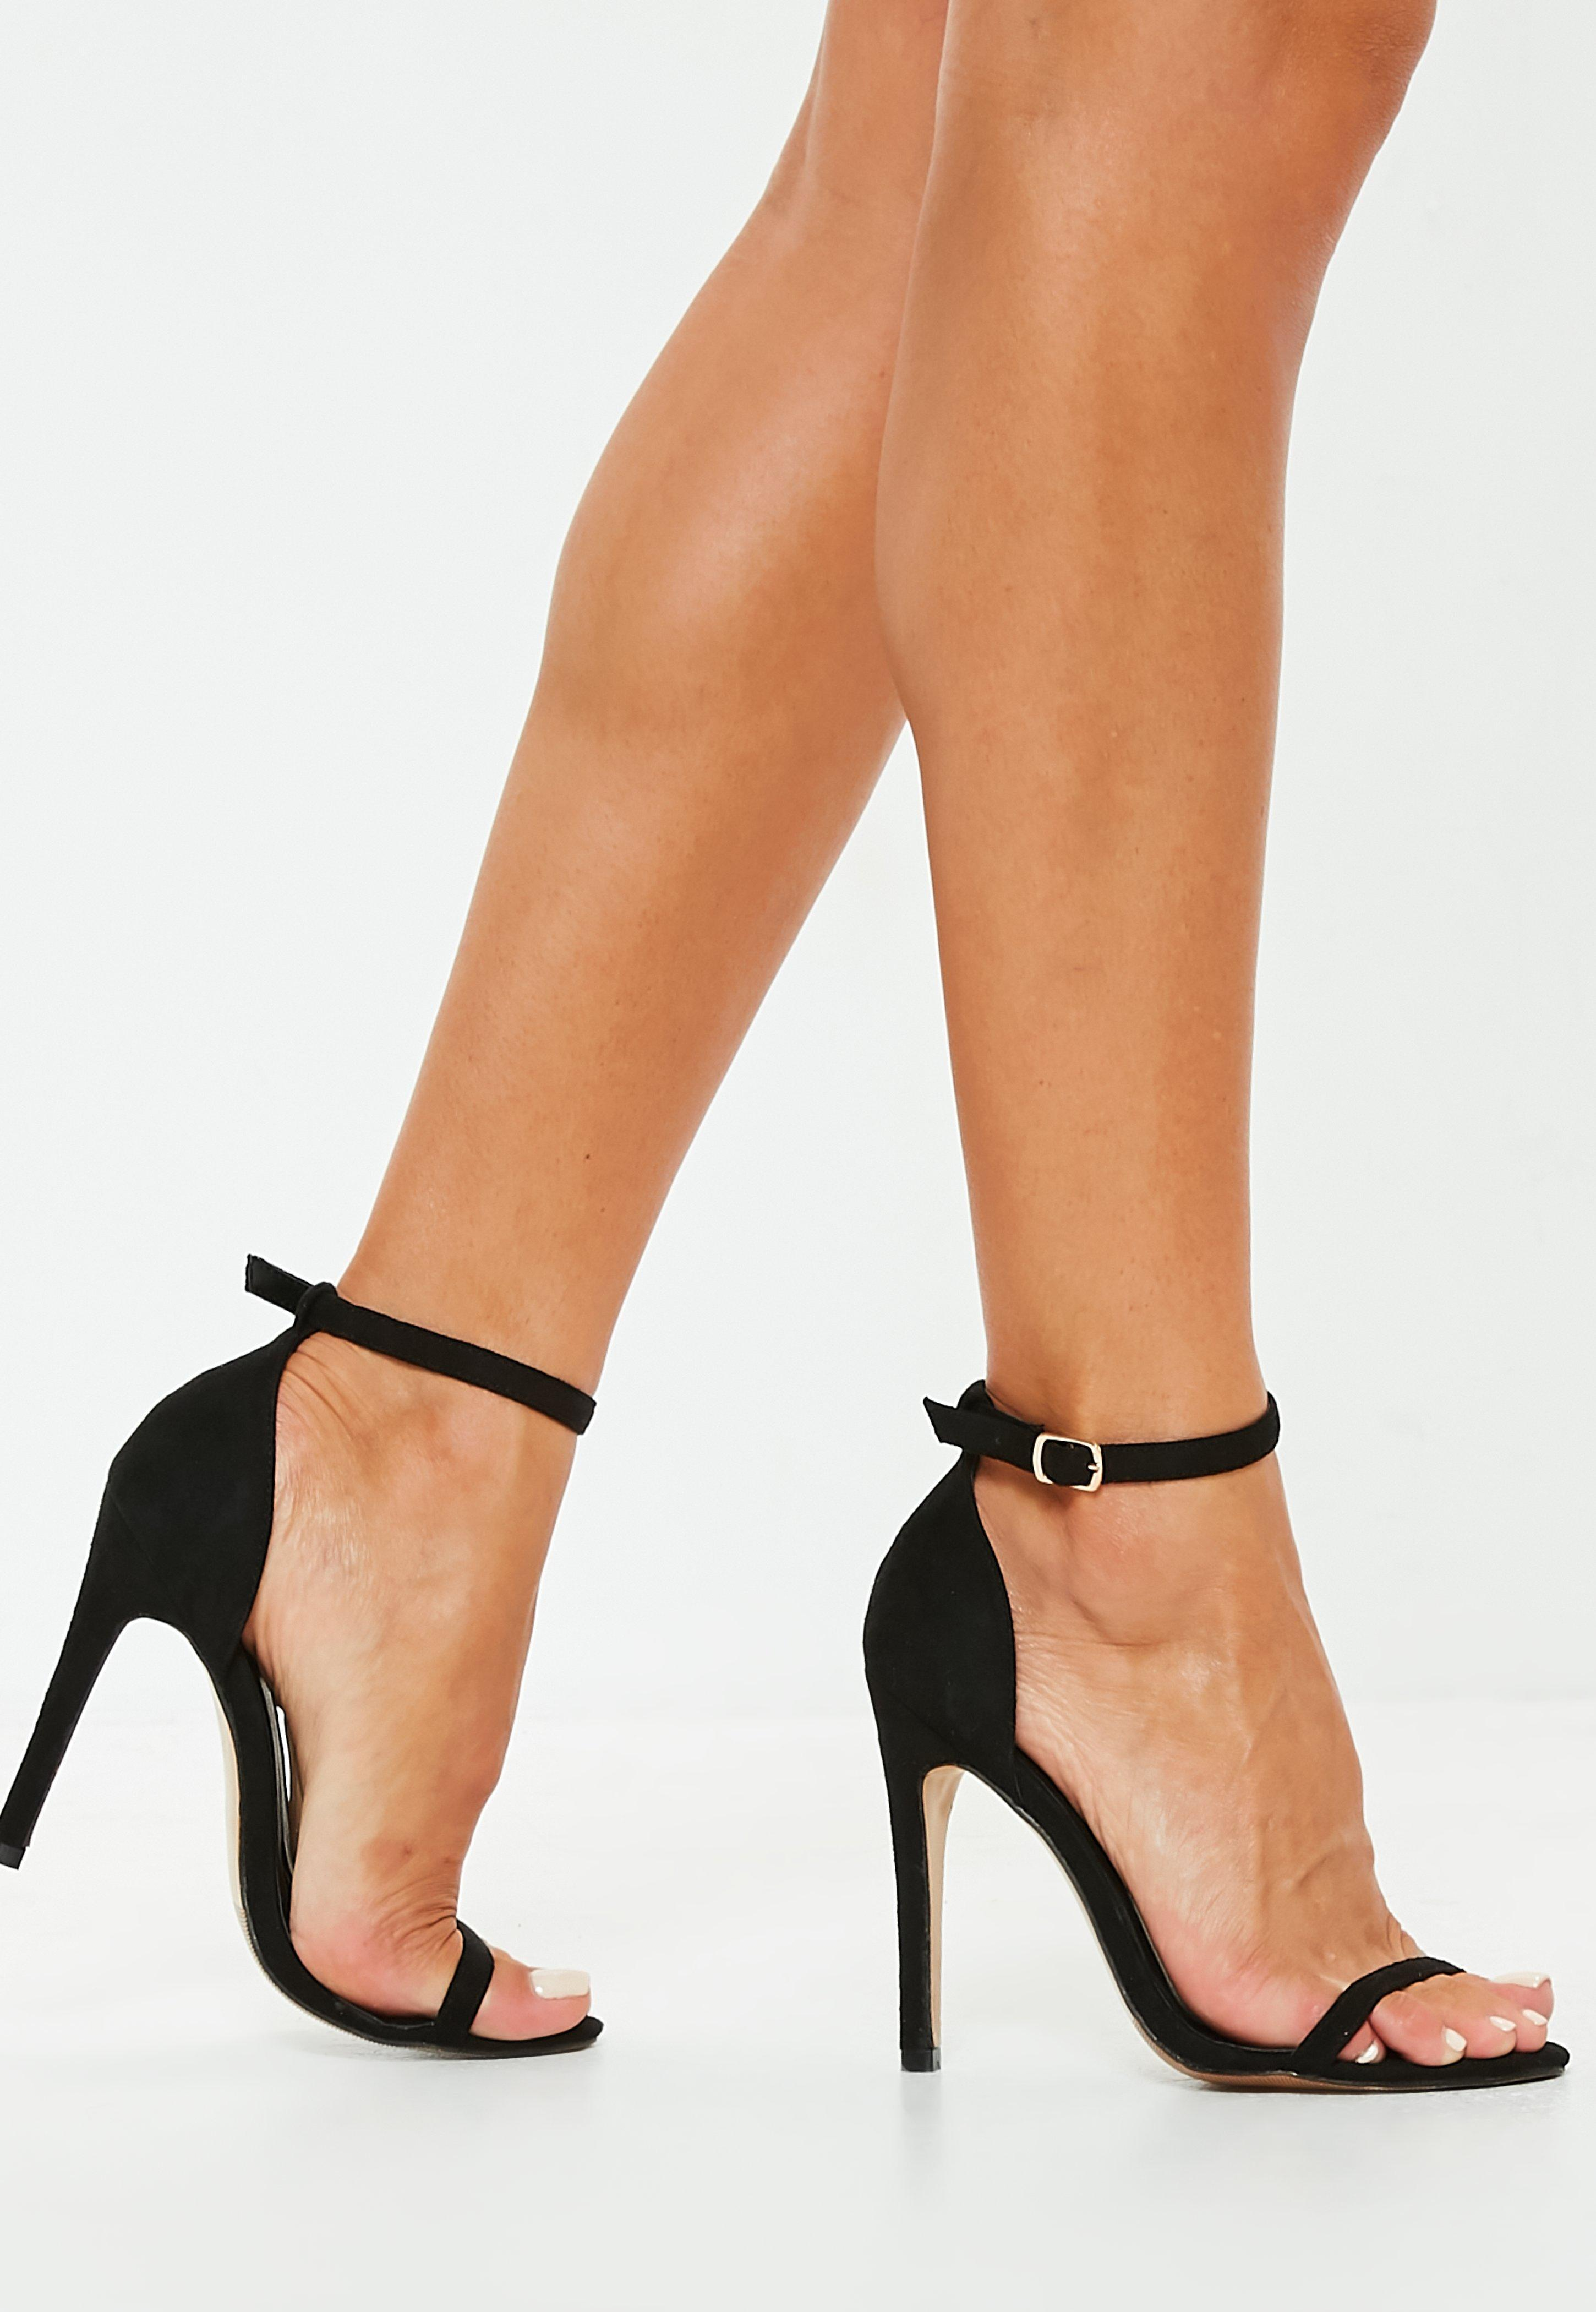 f7e92ff20ec Lyst - Missguided Black Barely There Heeled Sandals in Black